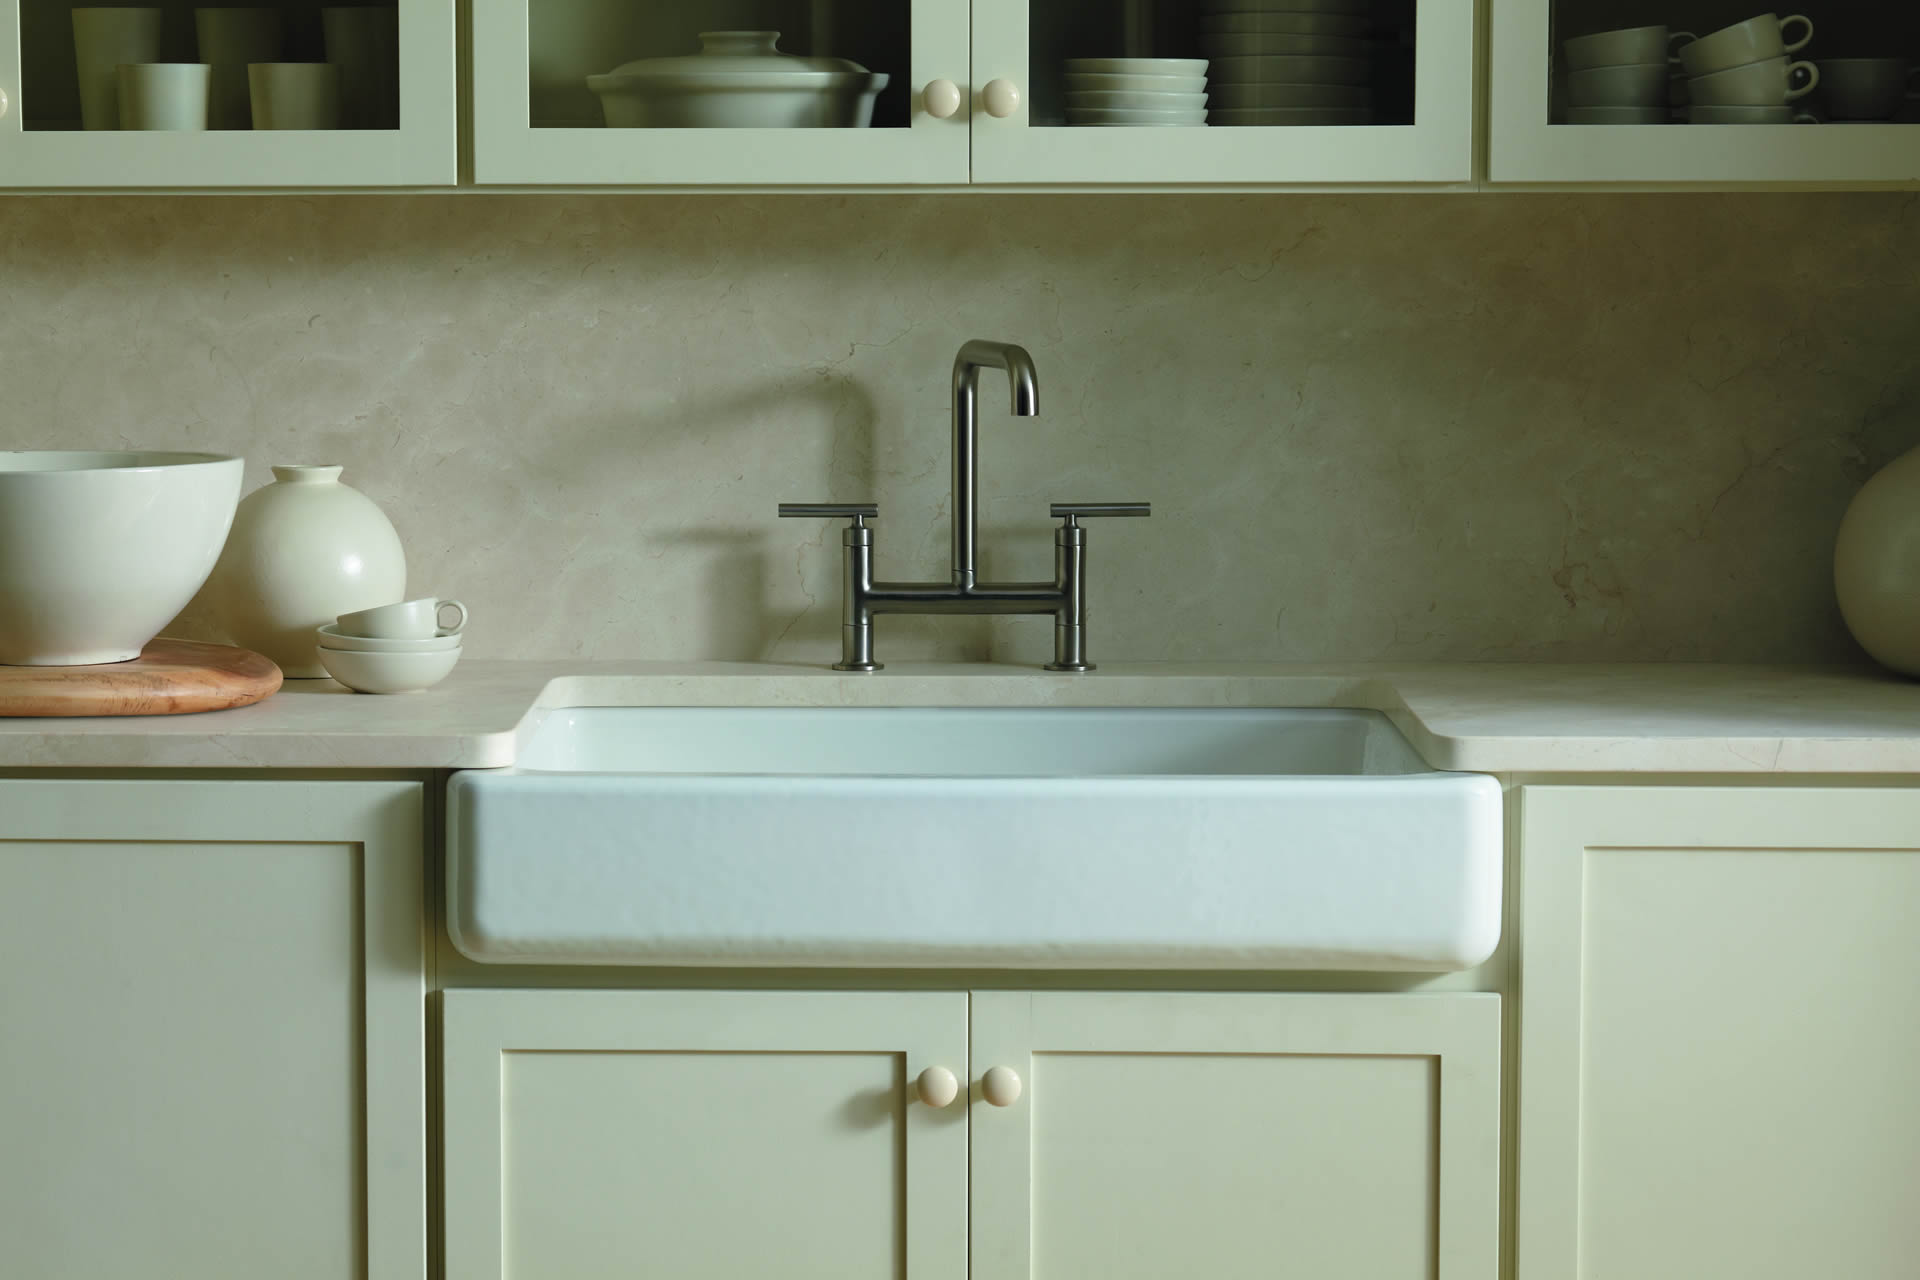 Kitchen Sinks Store Wool Kitchen And Bath Store